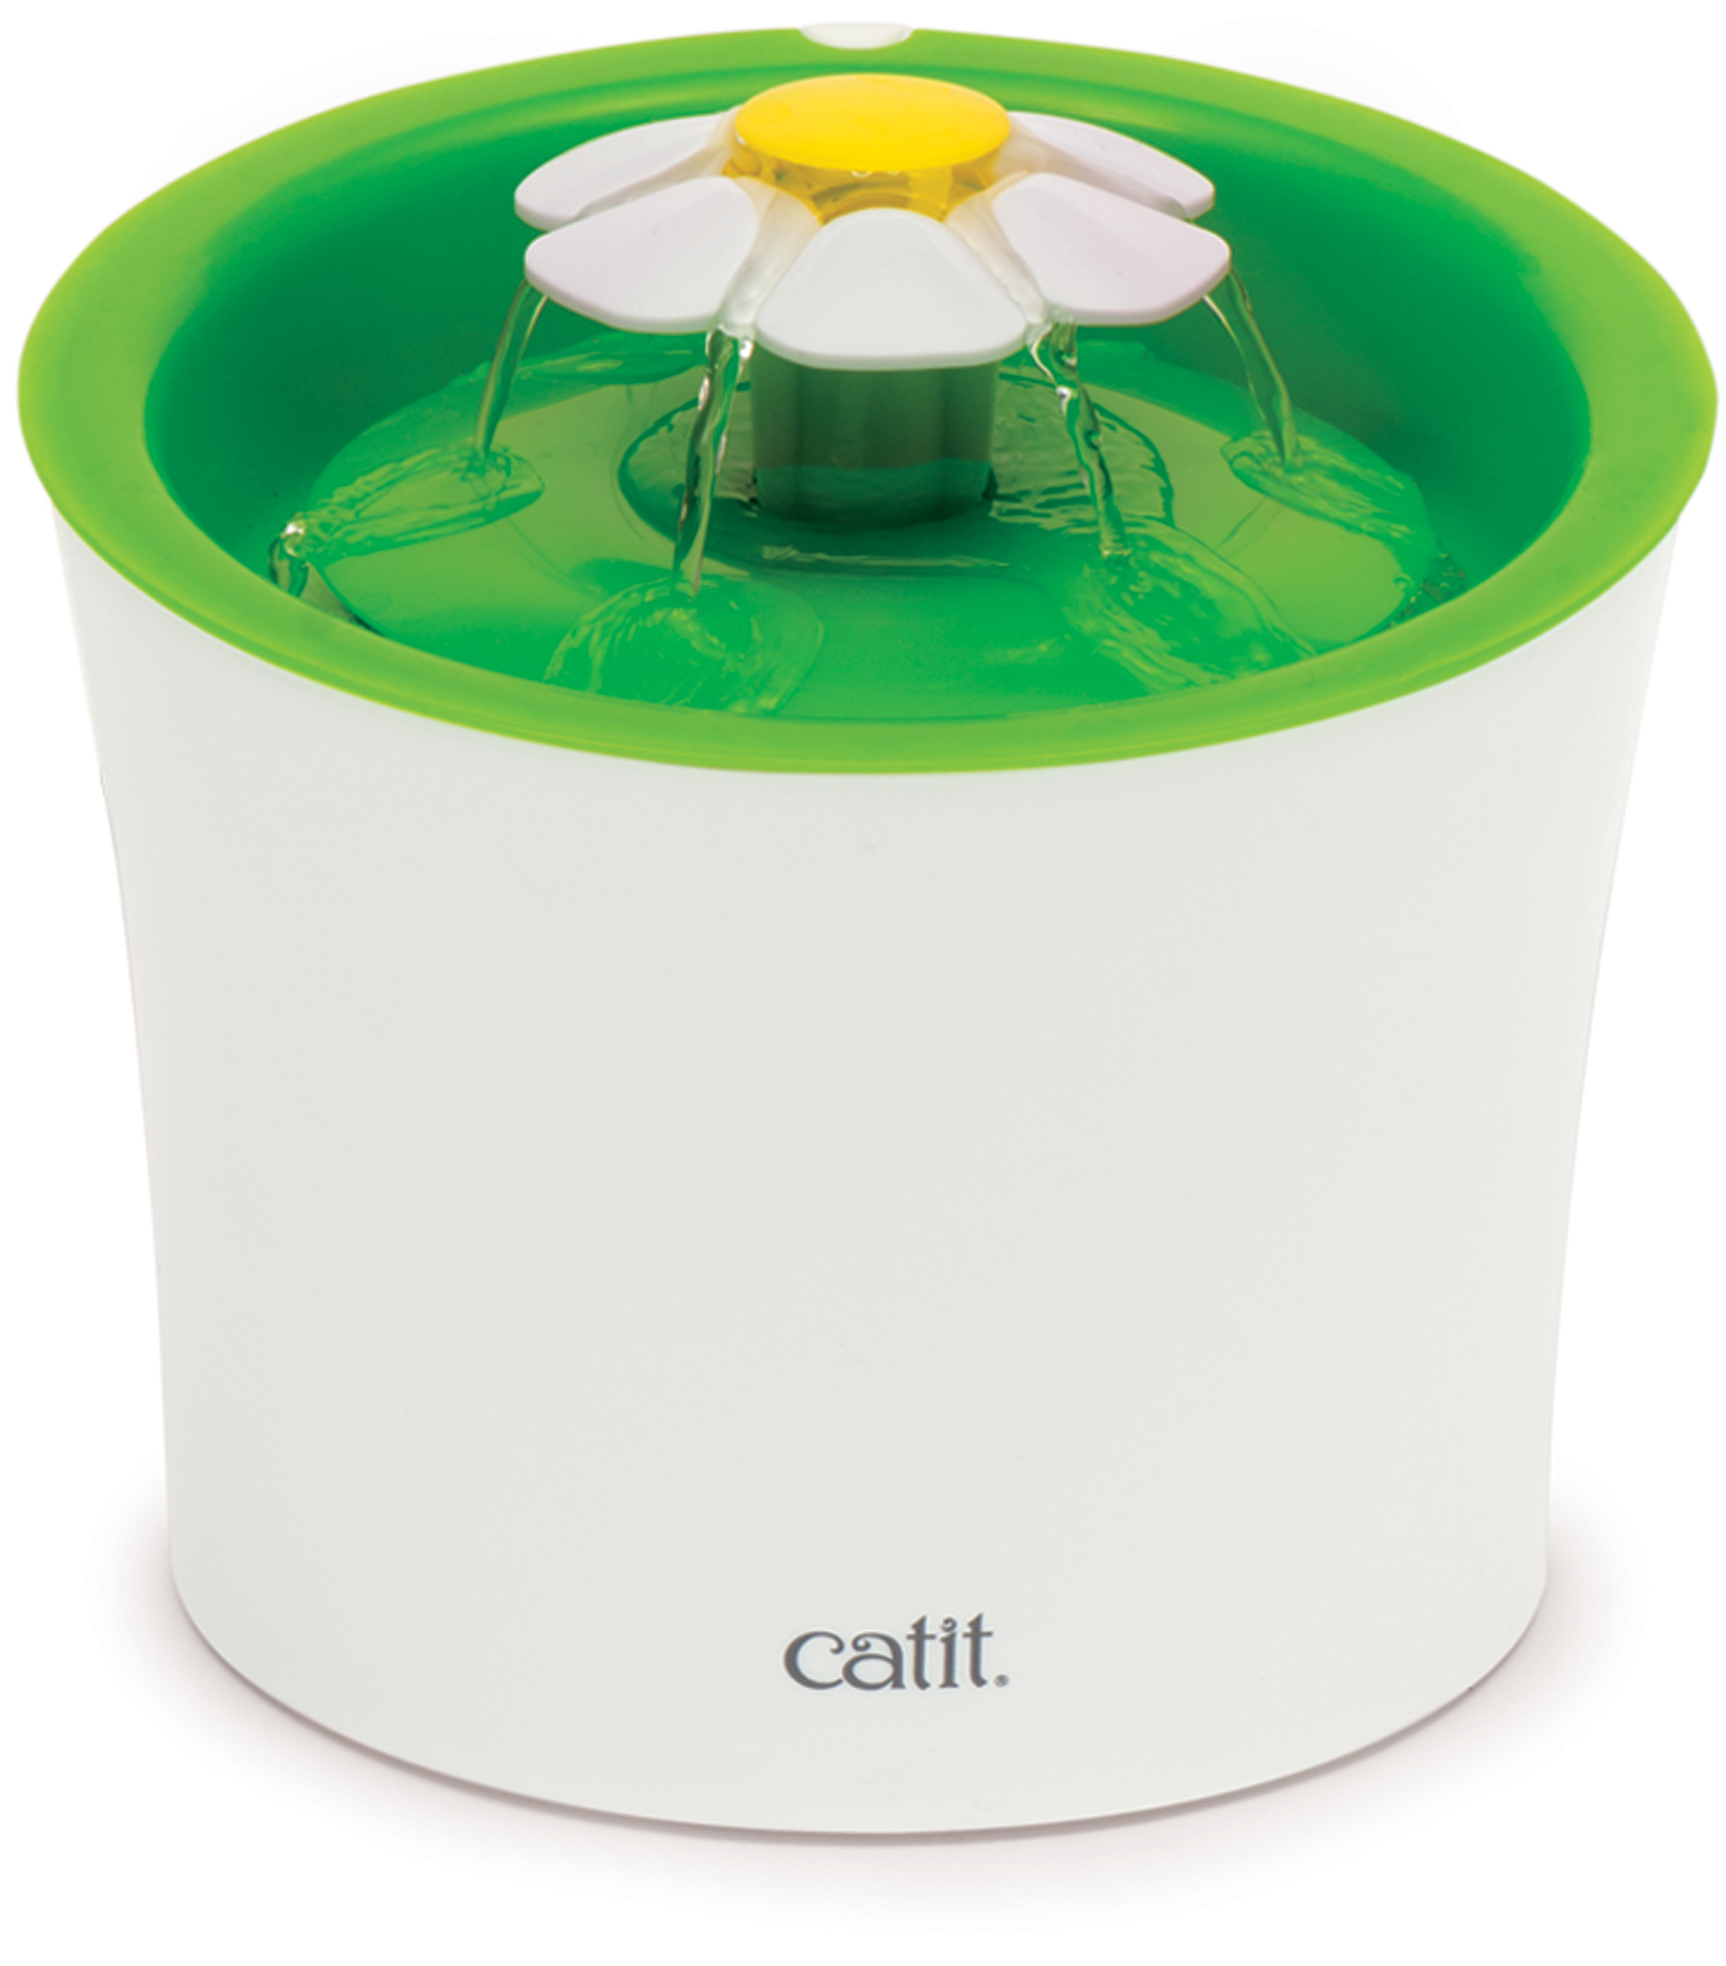 Hagen Catit Senses 2.0 Flower Fountain